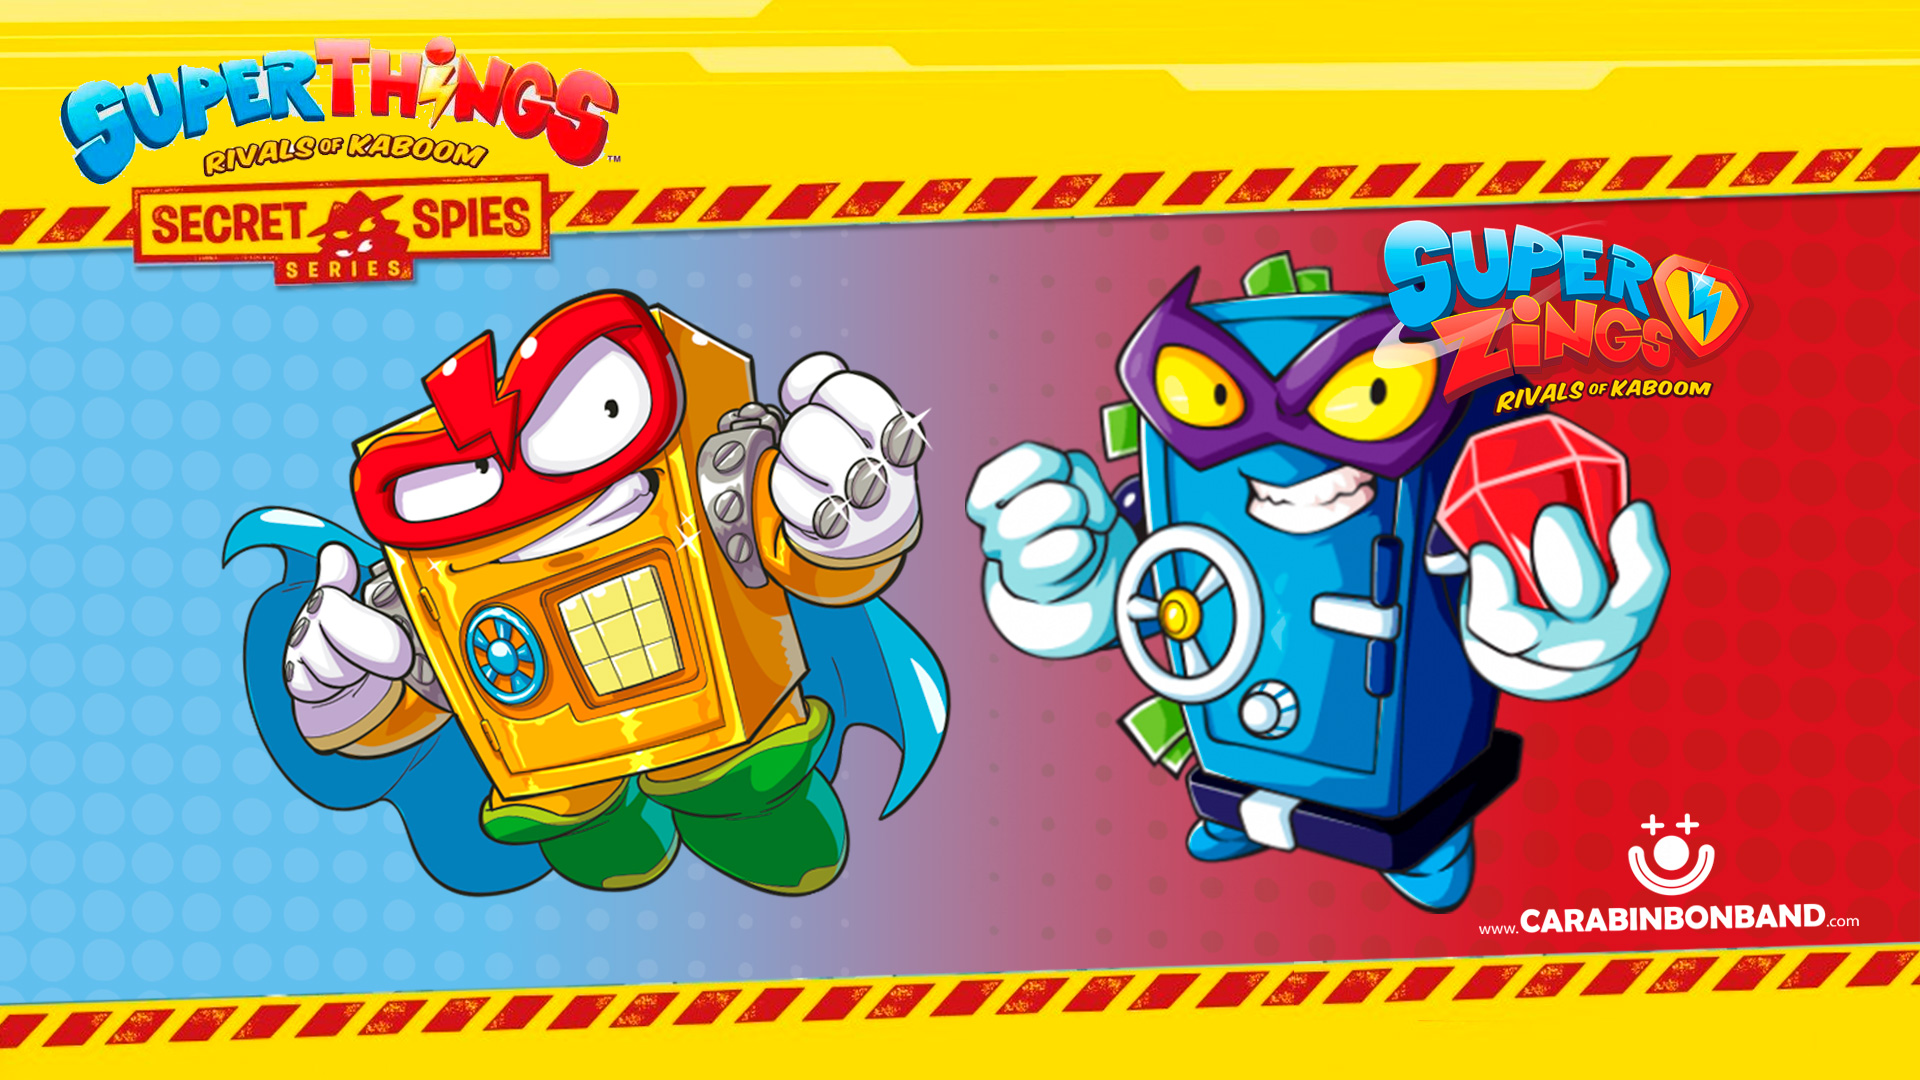 SUPERTHINGS SECRET SPIES VS. SUPERZINGS - Repeating objects